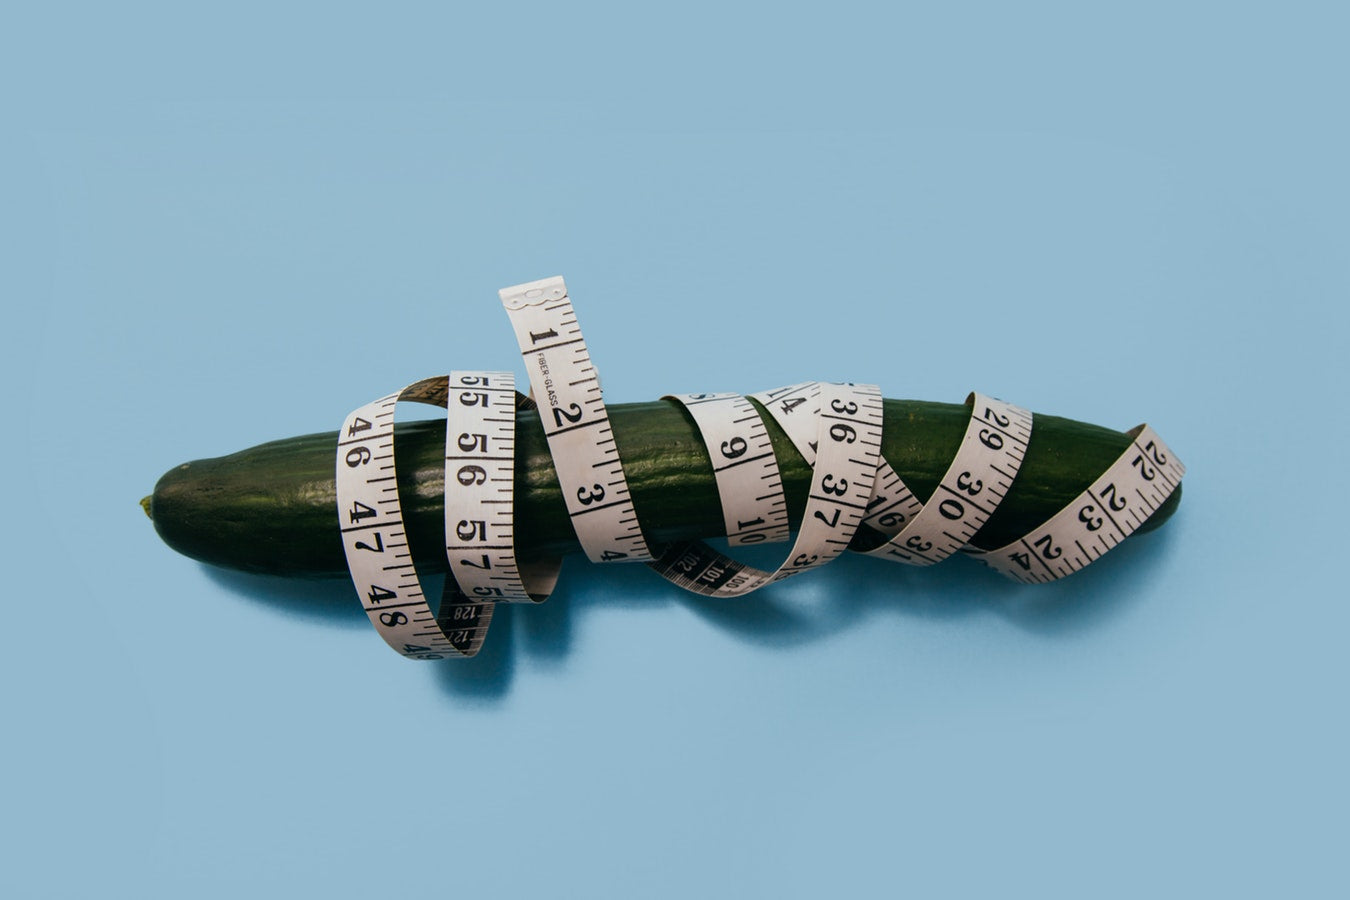 Why Eating Cucumber Is Great: Carbs & Other Important Nutritional Info